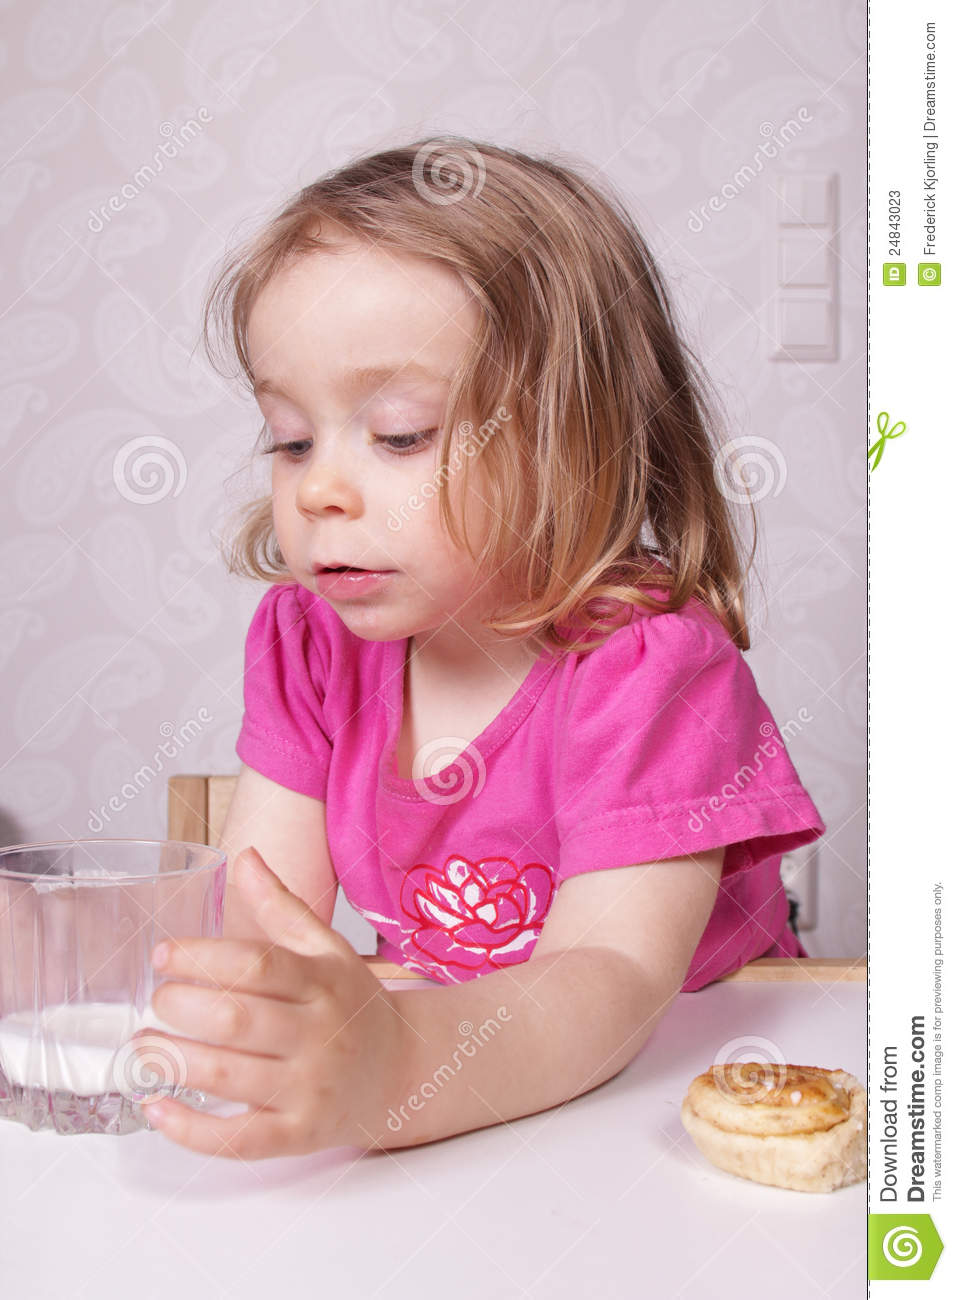 Young cute girl drinking a glass of milk and eating a cinnamon roll.